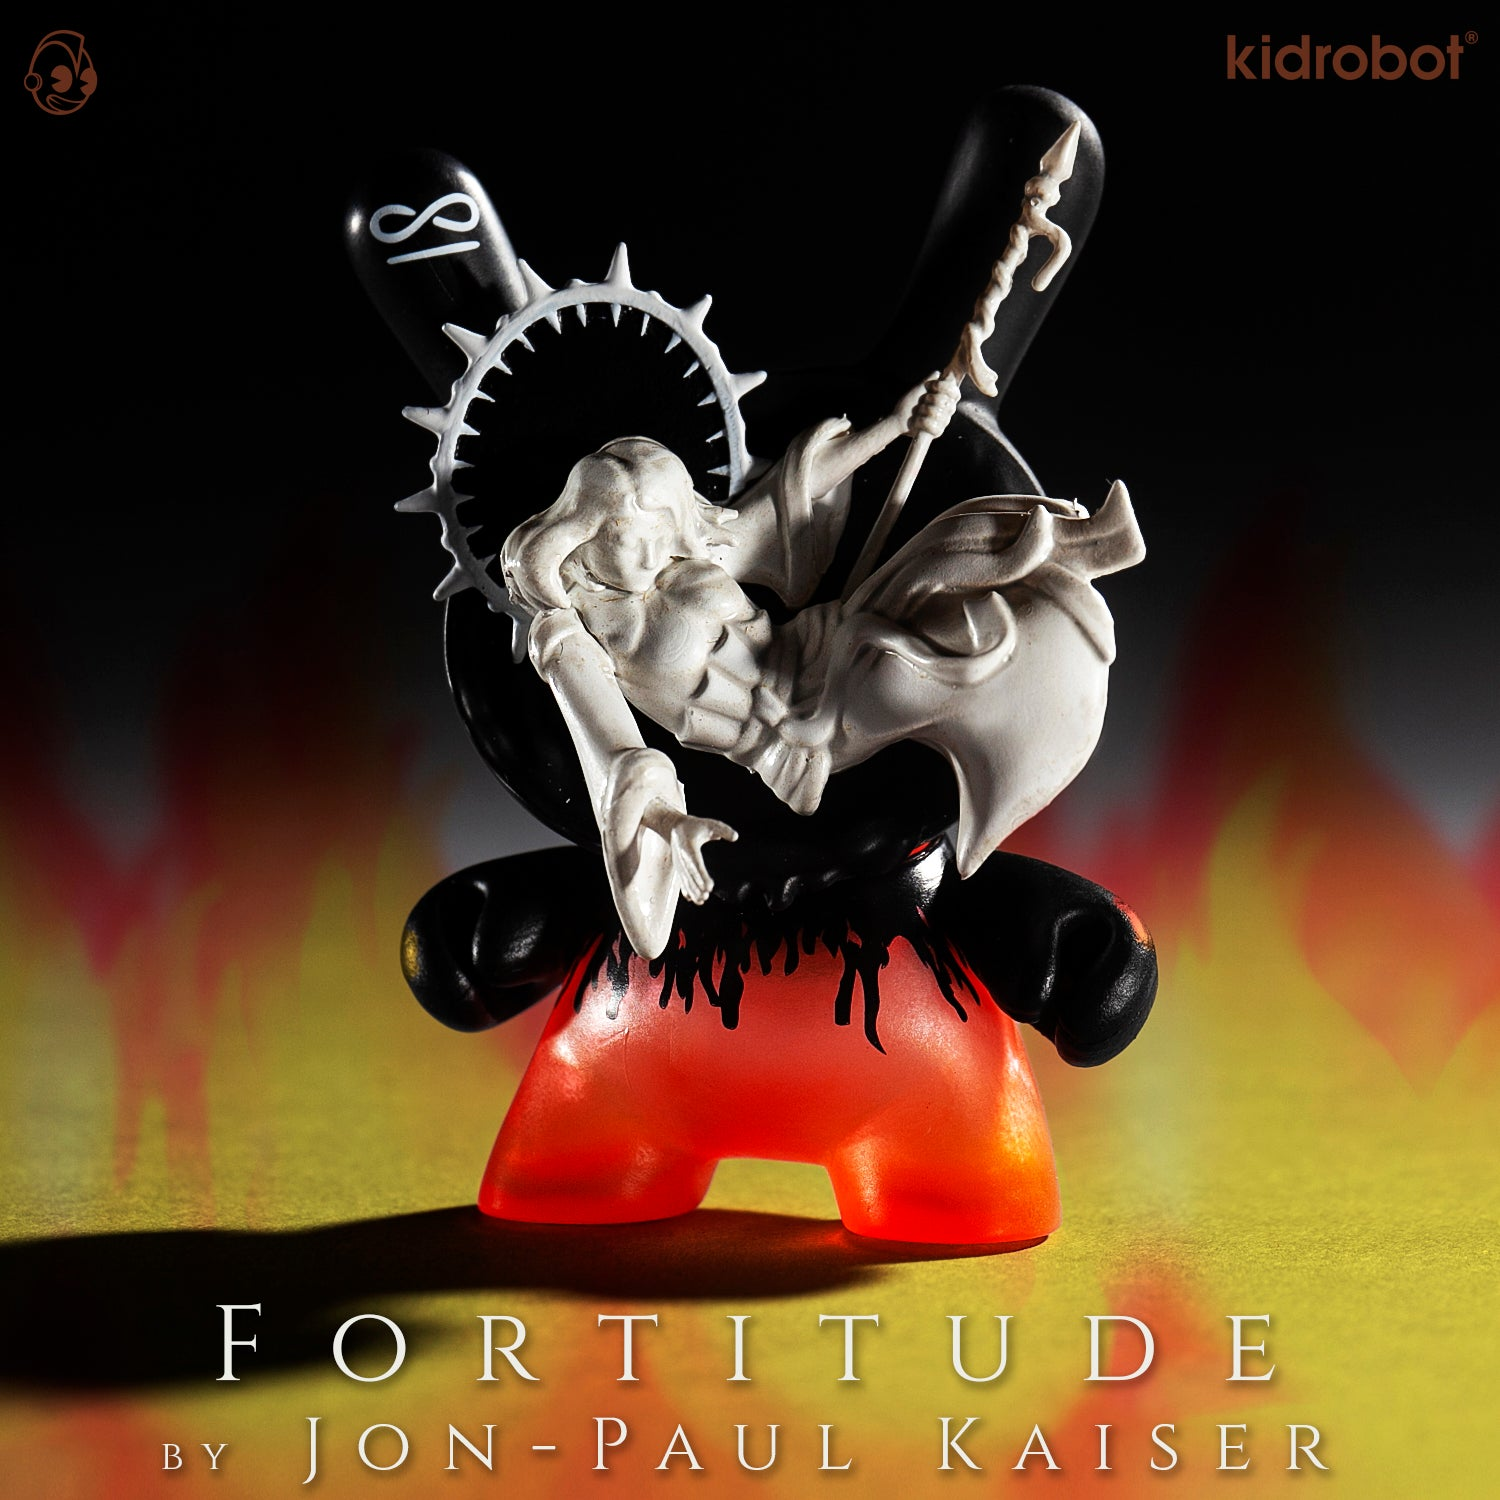 Fortitude Dunny by Jon-Paul Kaiser - Arcane Divination The Lost Cards - Kidrobot